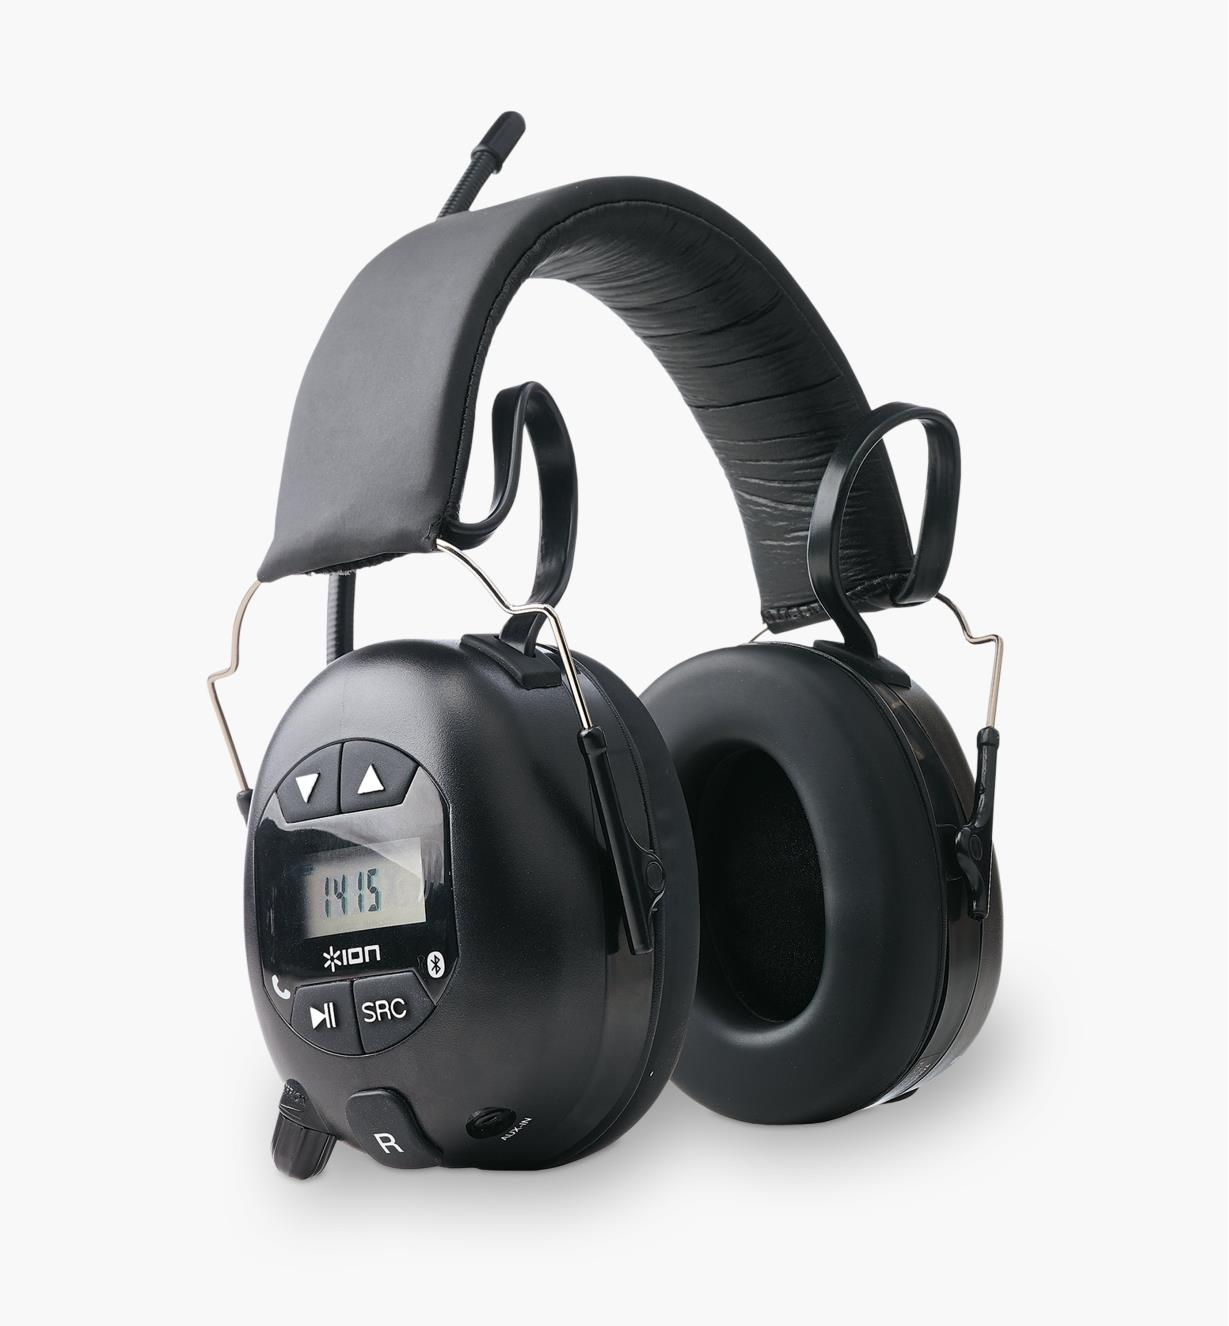 22R1281 - Electronic Hearing Protectors with Bluetooth & AM/FM Radio